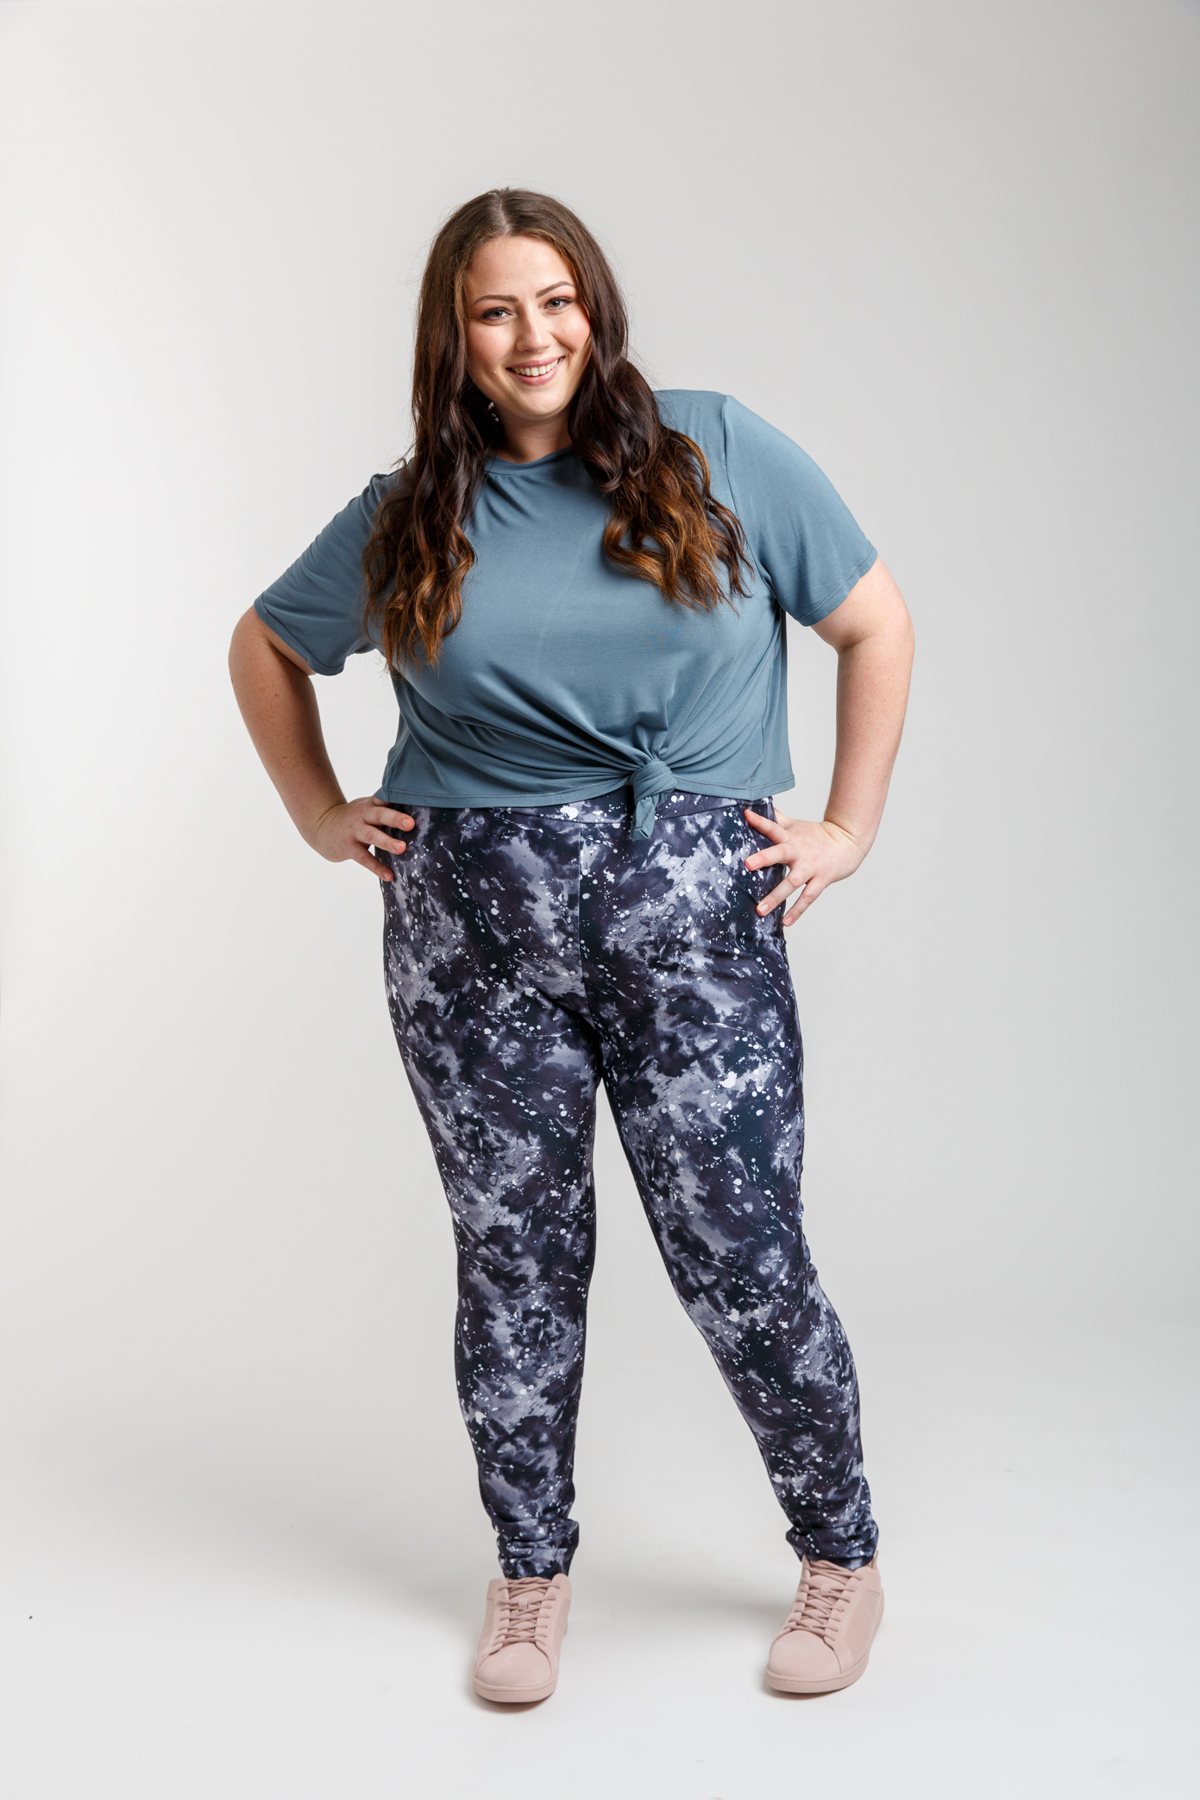 Megan Nielsen Curve Virginia leggings and Floreat tee